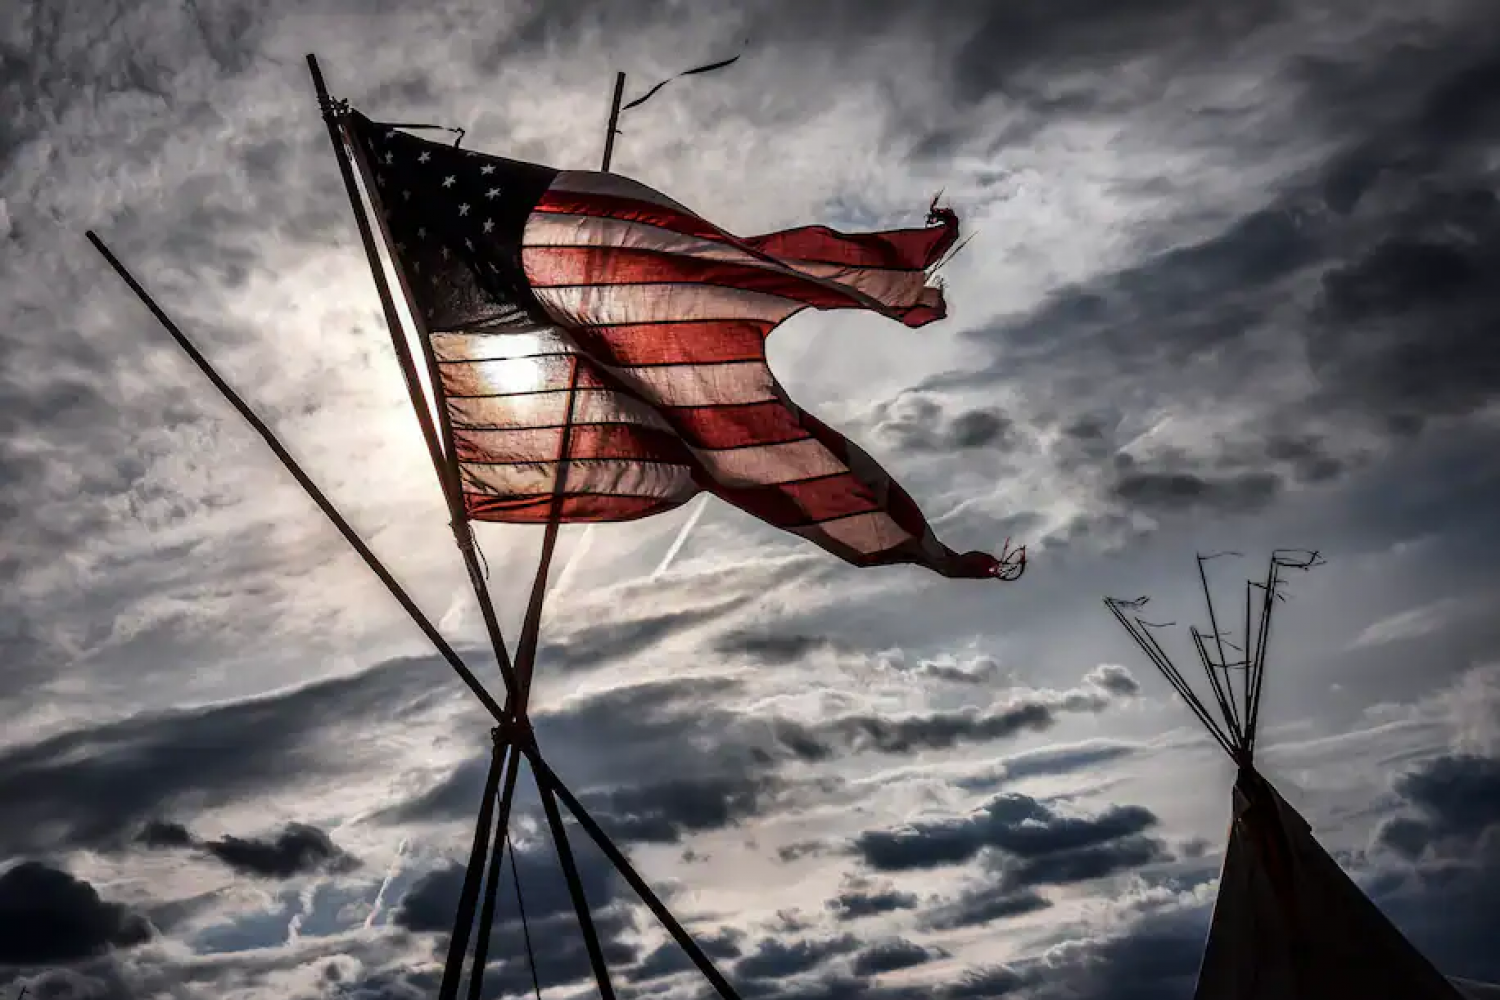 A U.S. flag is flown over a Native American tepee erected during a protest in Washington in 2017. (Bill O'Leary/The Washington Post)